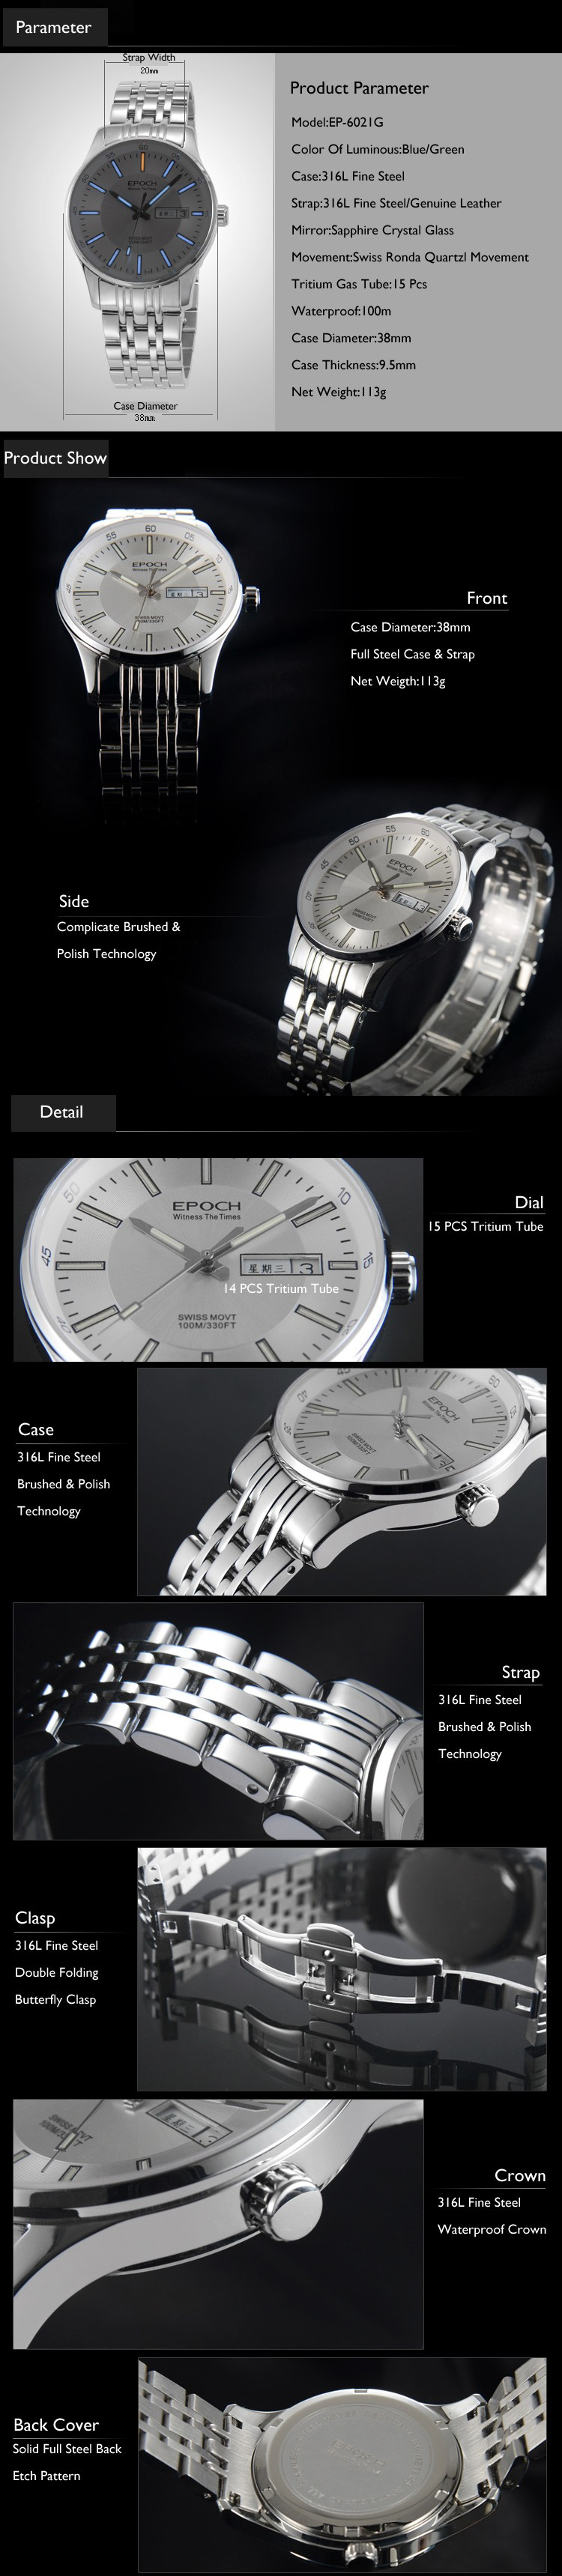 EPOCH 6021G waterproof 100m tritium gas luminous fashion business mens quartz watch